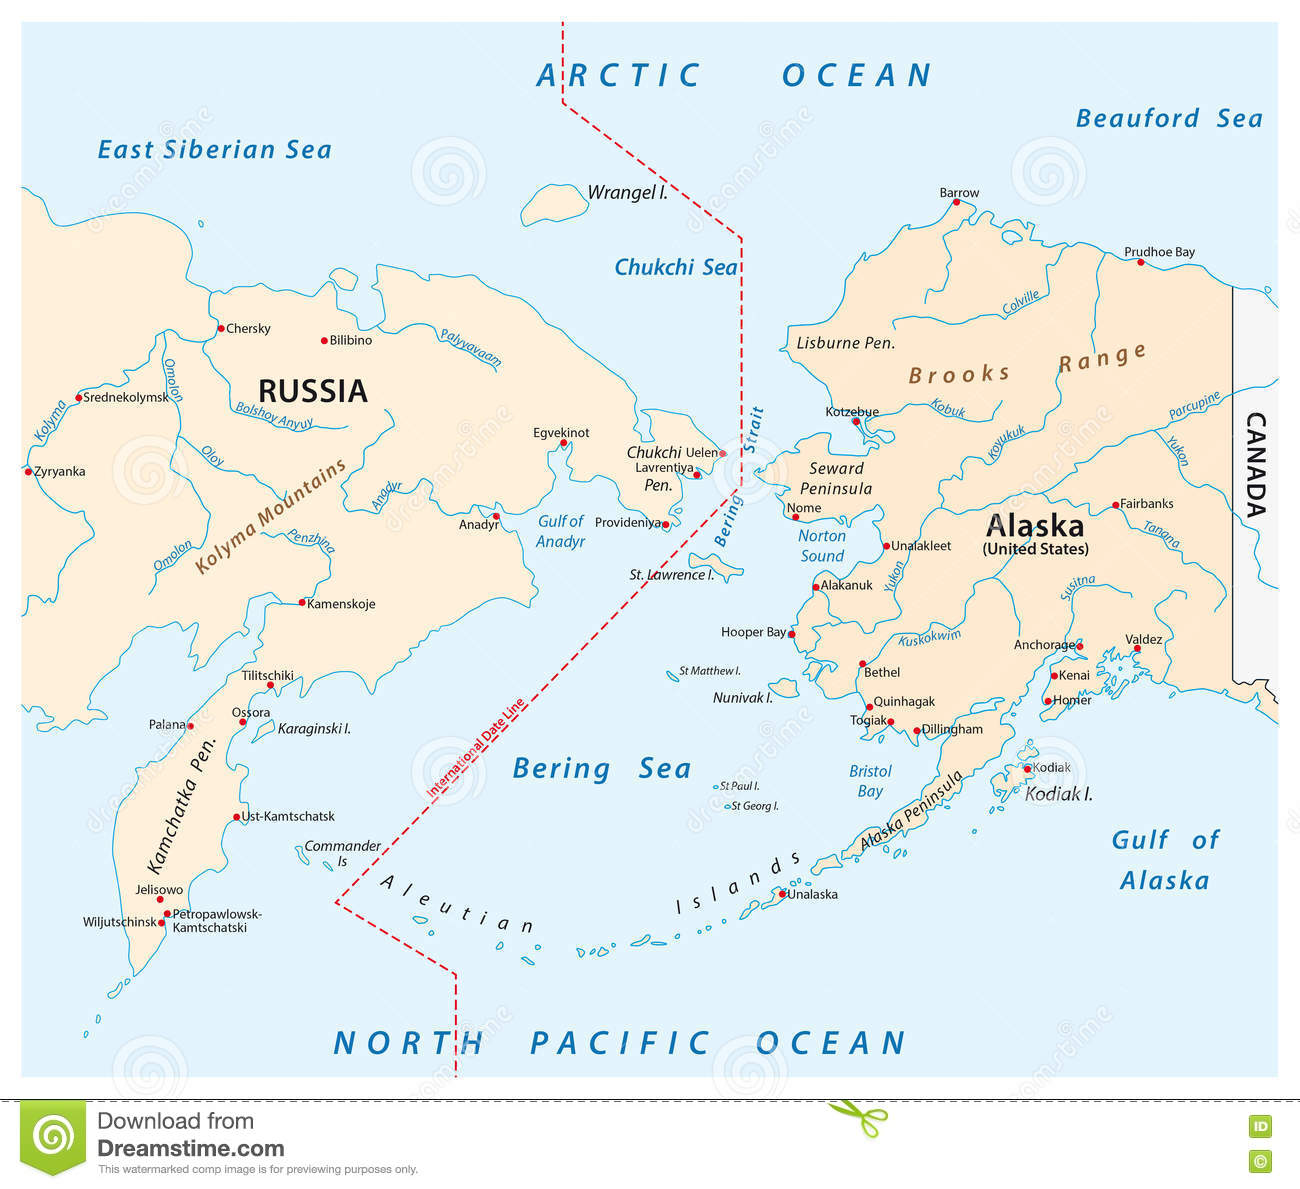 russia to alaska map Map Of The Bering Strait Between Russia And Alaska Stock